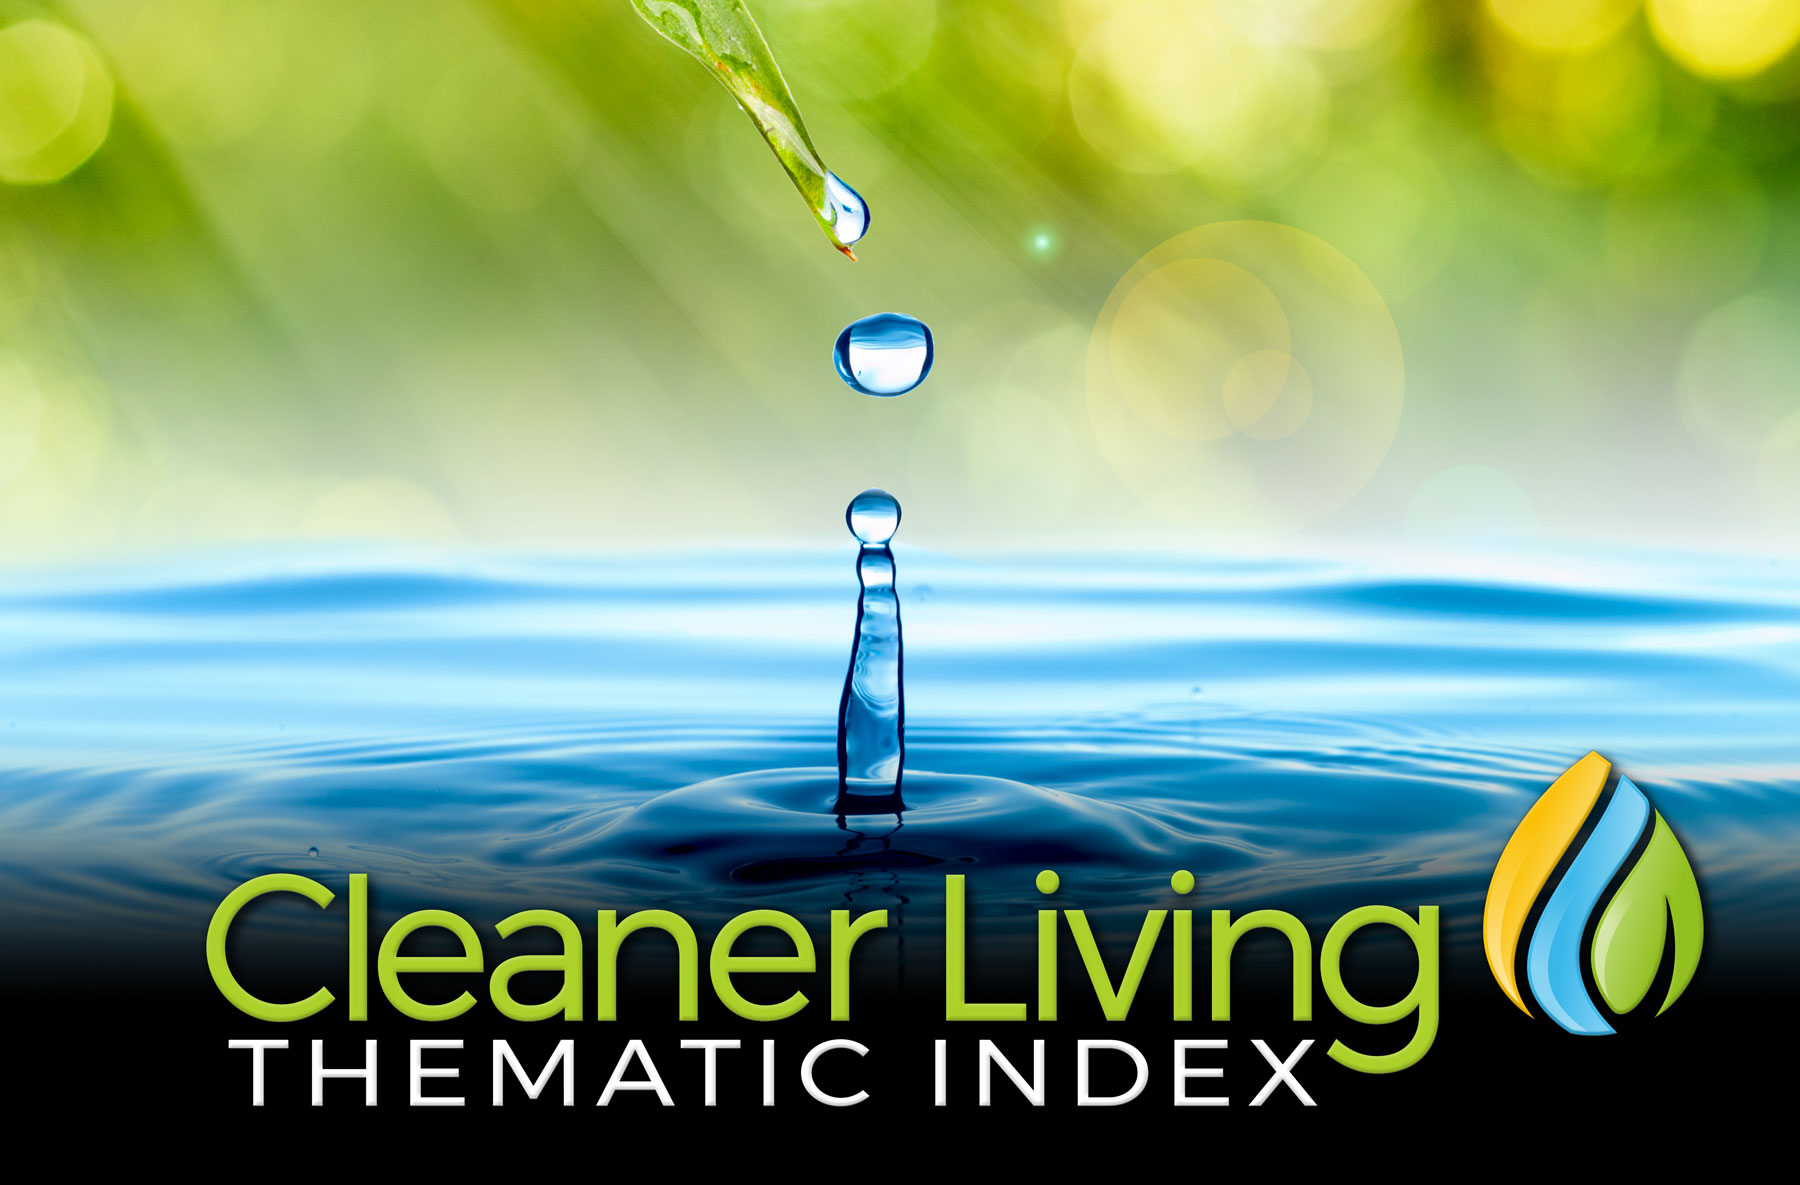 Cleaner Living Index